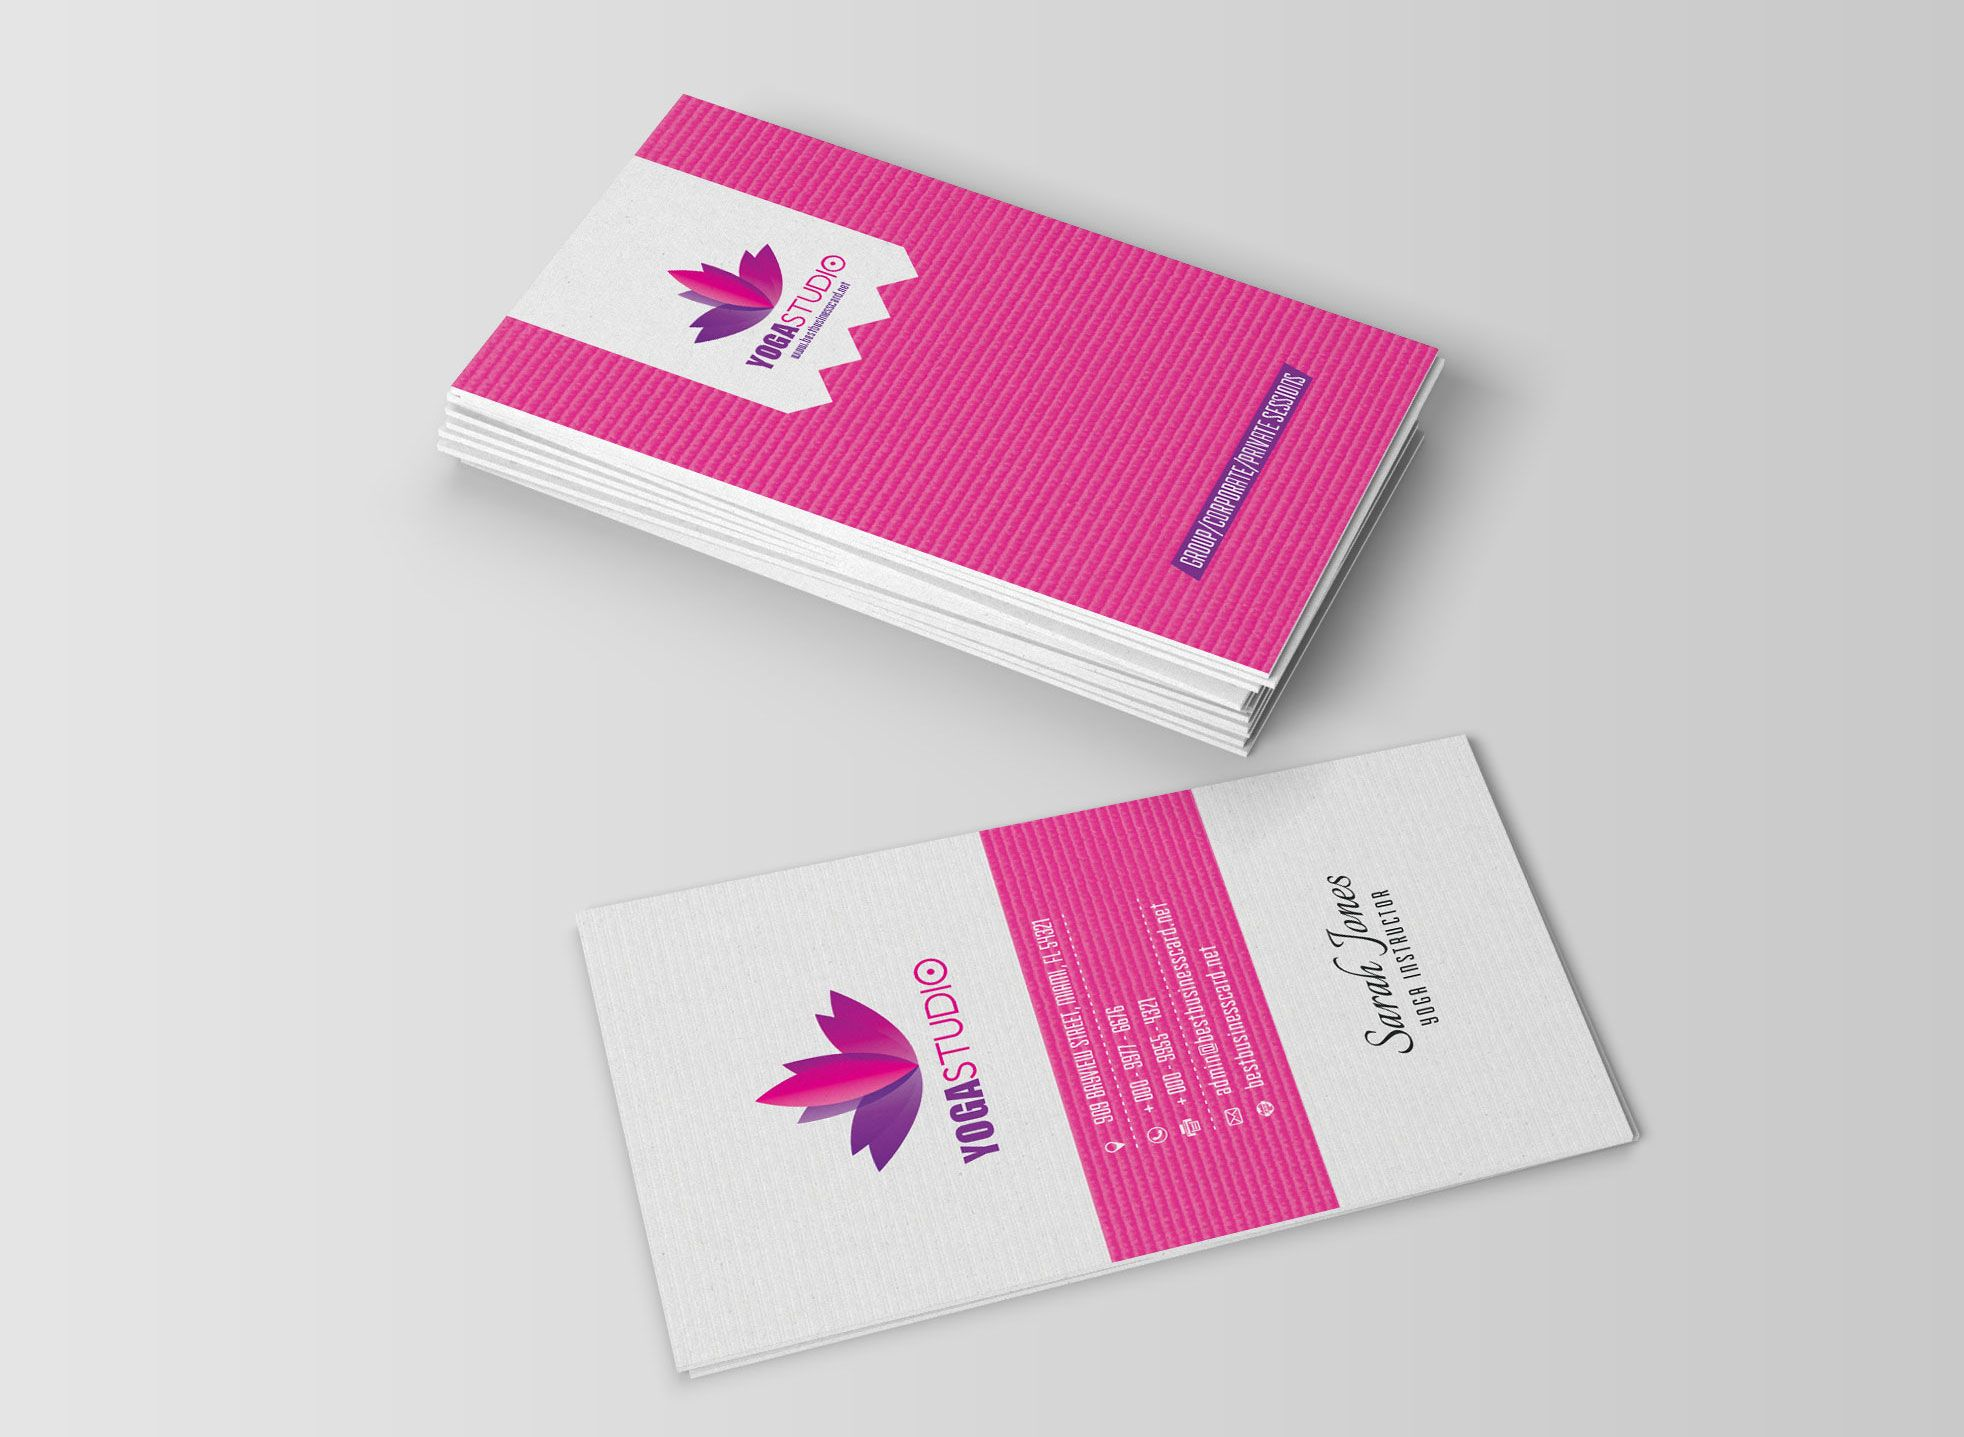 Yoga business cards free psd templates card pinterest psd yoga business cards free psd templates reheart Image collections